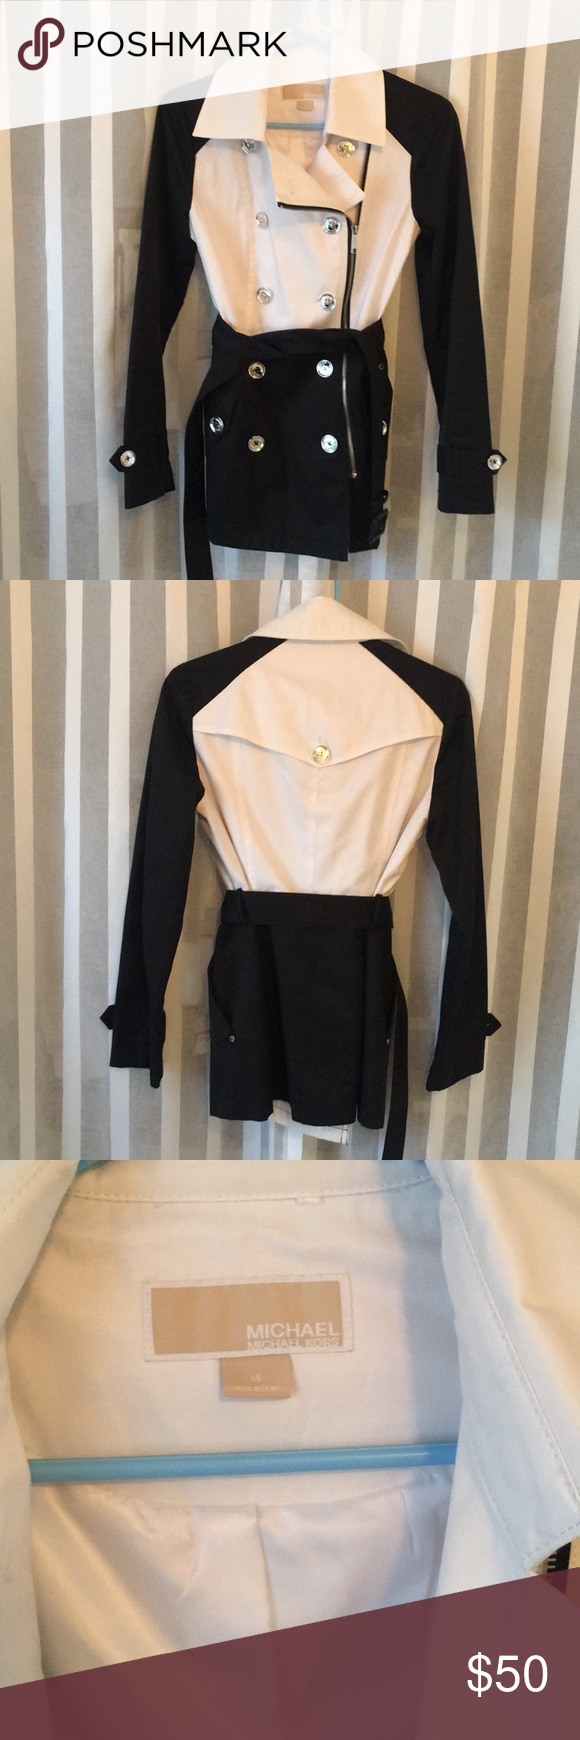 Michael Kors Jacket Nwot Black And White Trench Is So Versible It Was A Must Have When I Bought It And I Ju Clothes Design Michael Kors Jackets Fashion Design [ 1740 x 580 Pixel ]